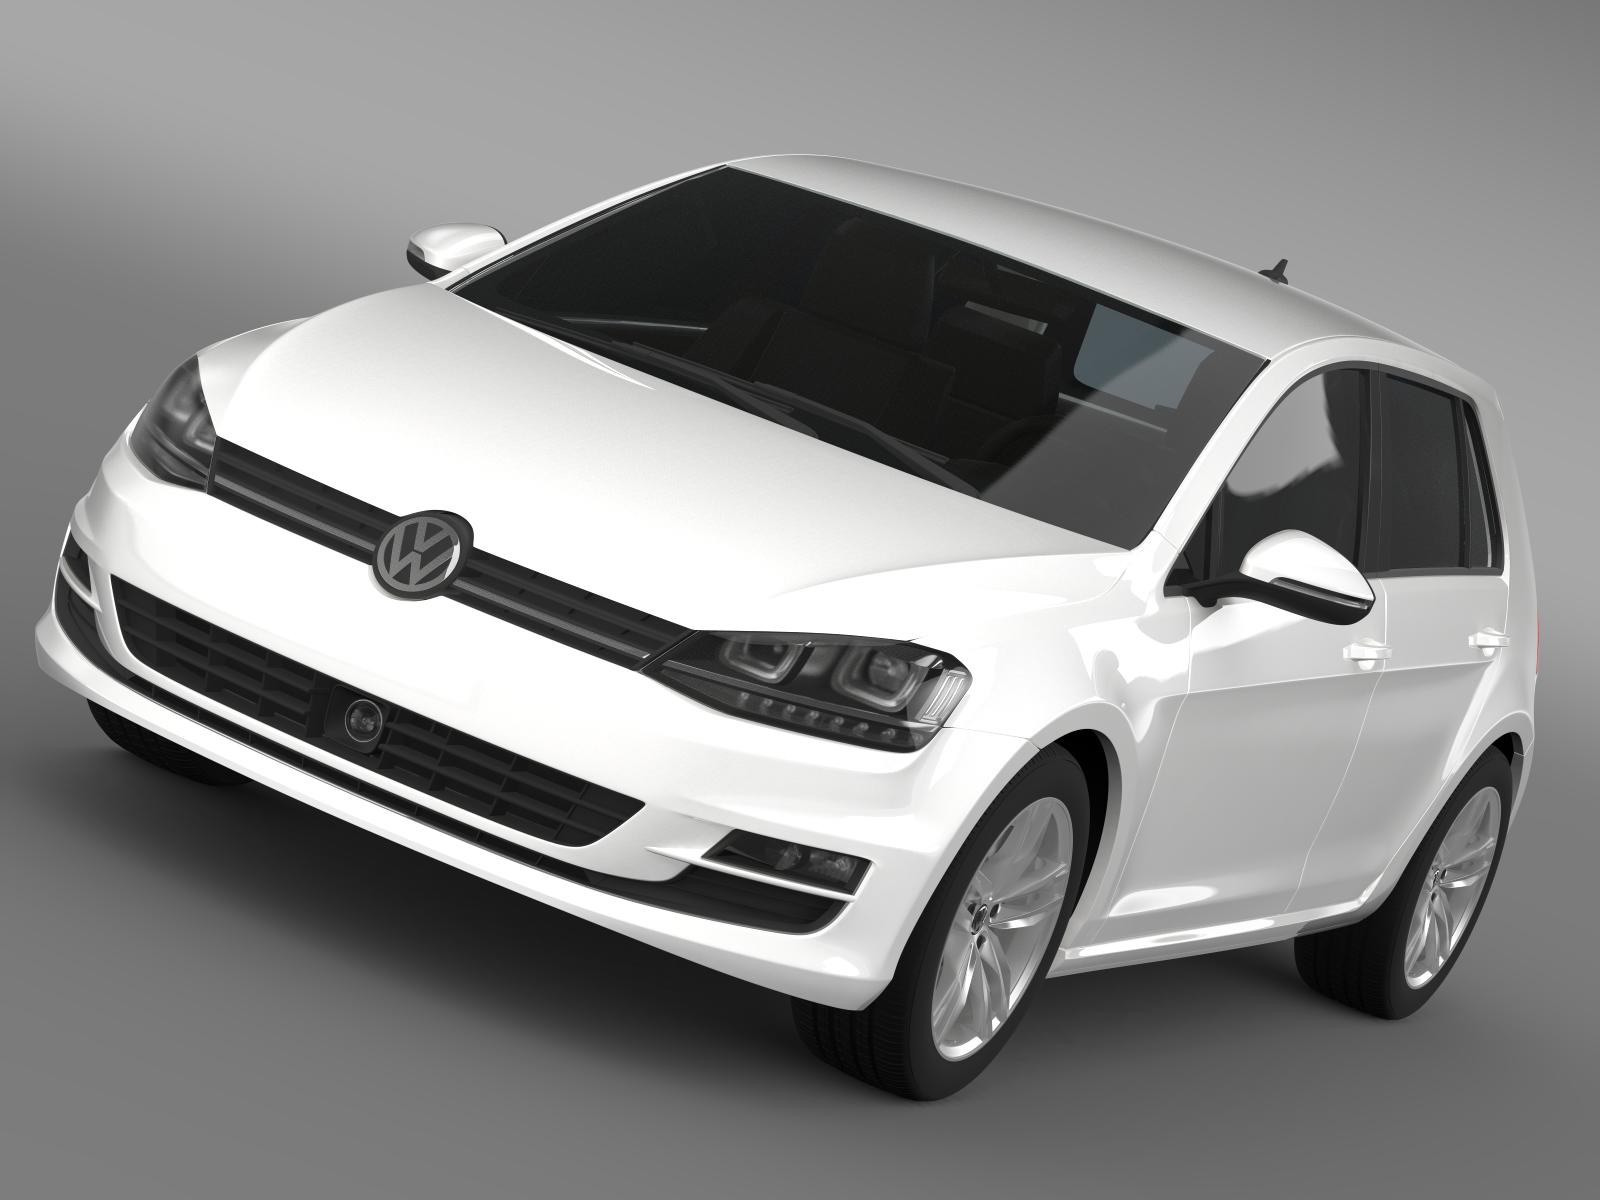 vw golf tdi 4motion 5d tip 5g 2013 3d model 3ds max fbx c4d lwo ma mb hrc xsi obj 165028